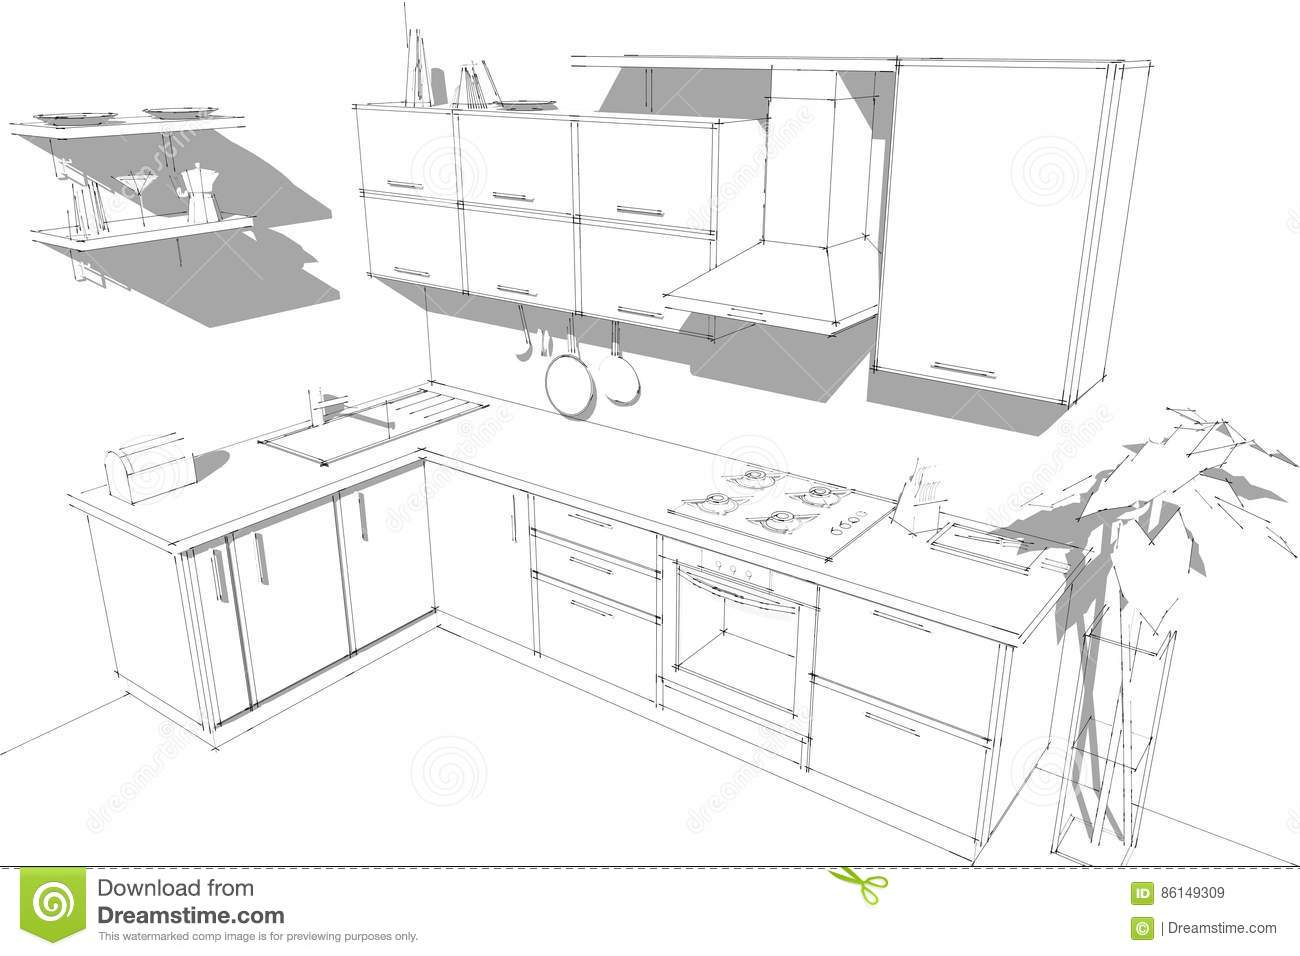 disegna cucina. kitchendraw image 1 thumbnail kitchendraw image 2 ...